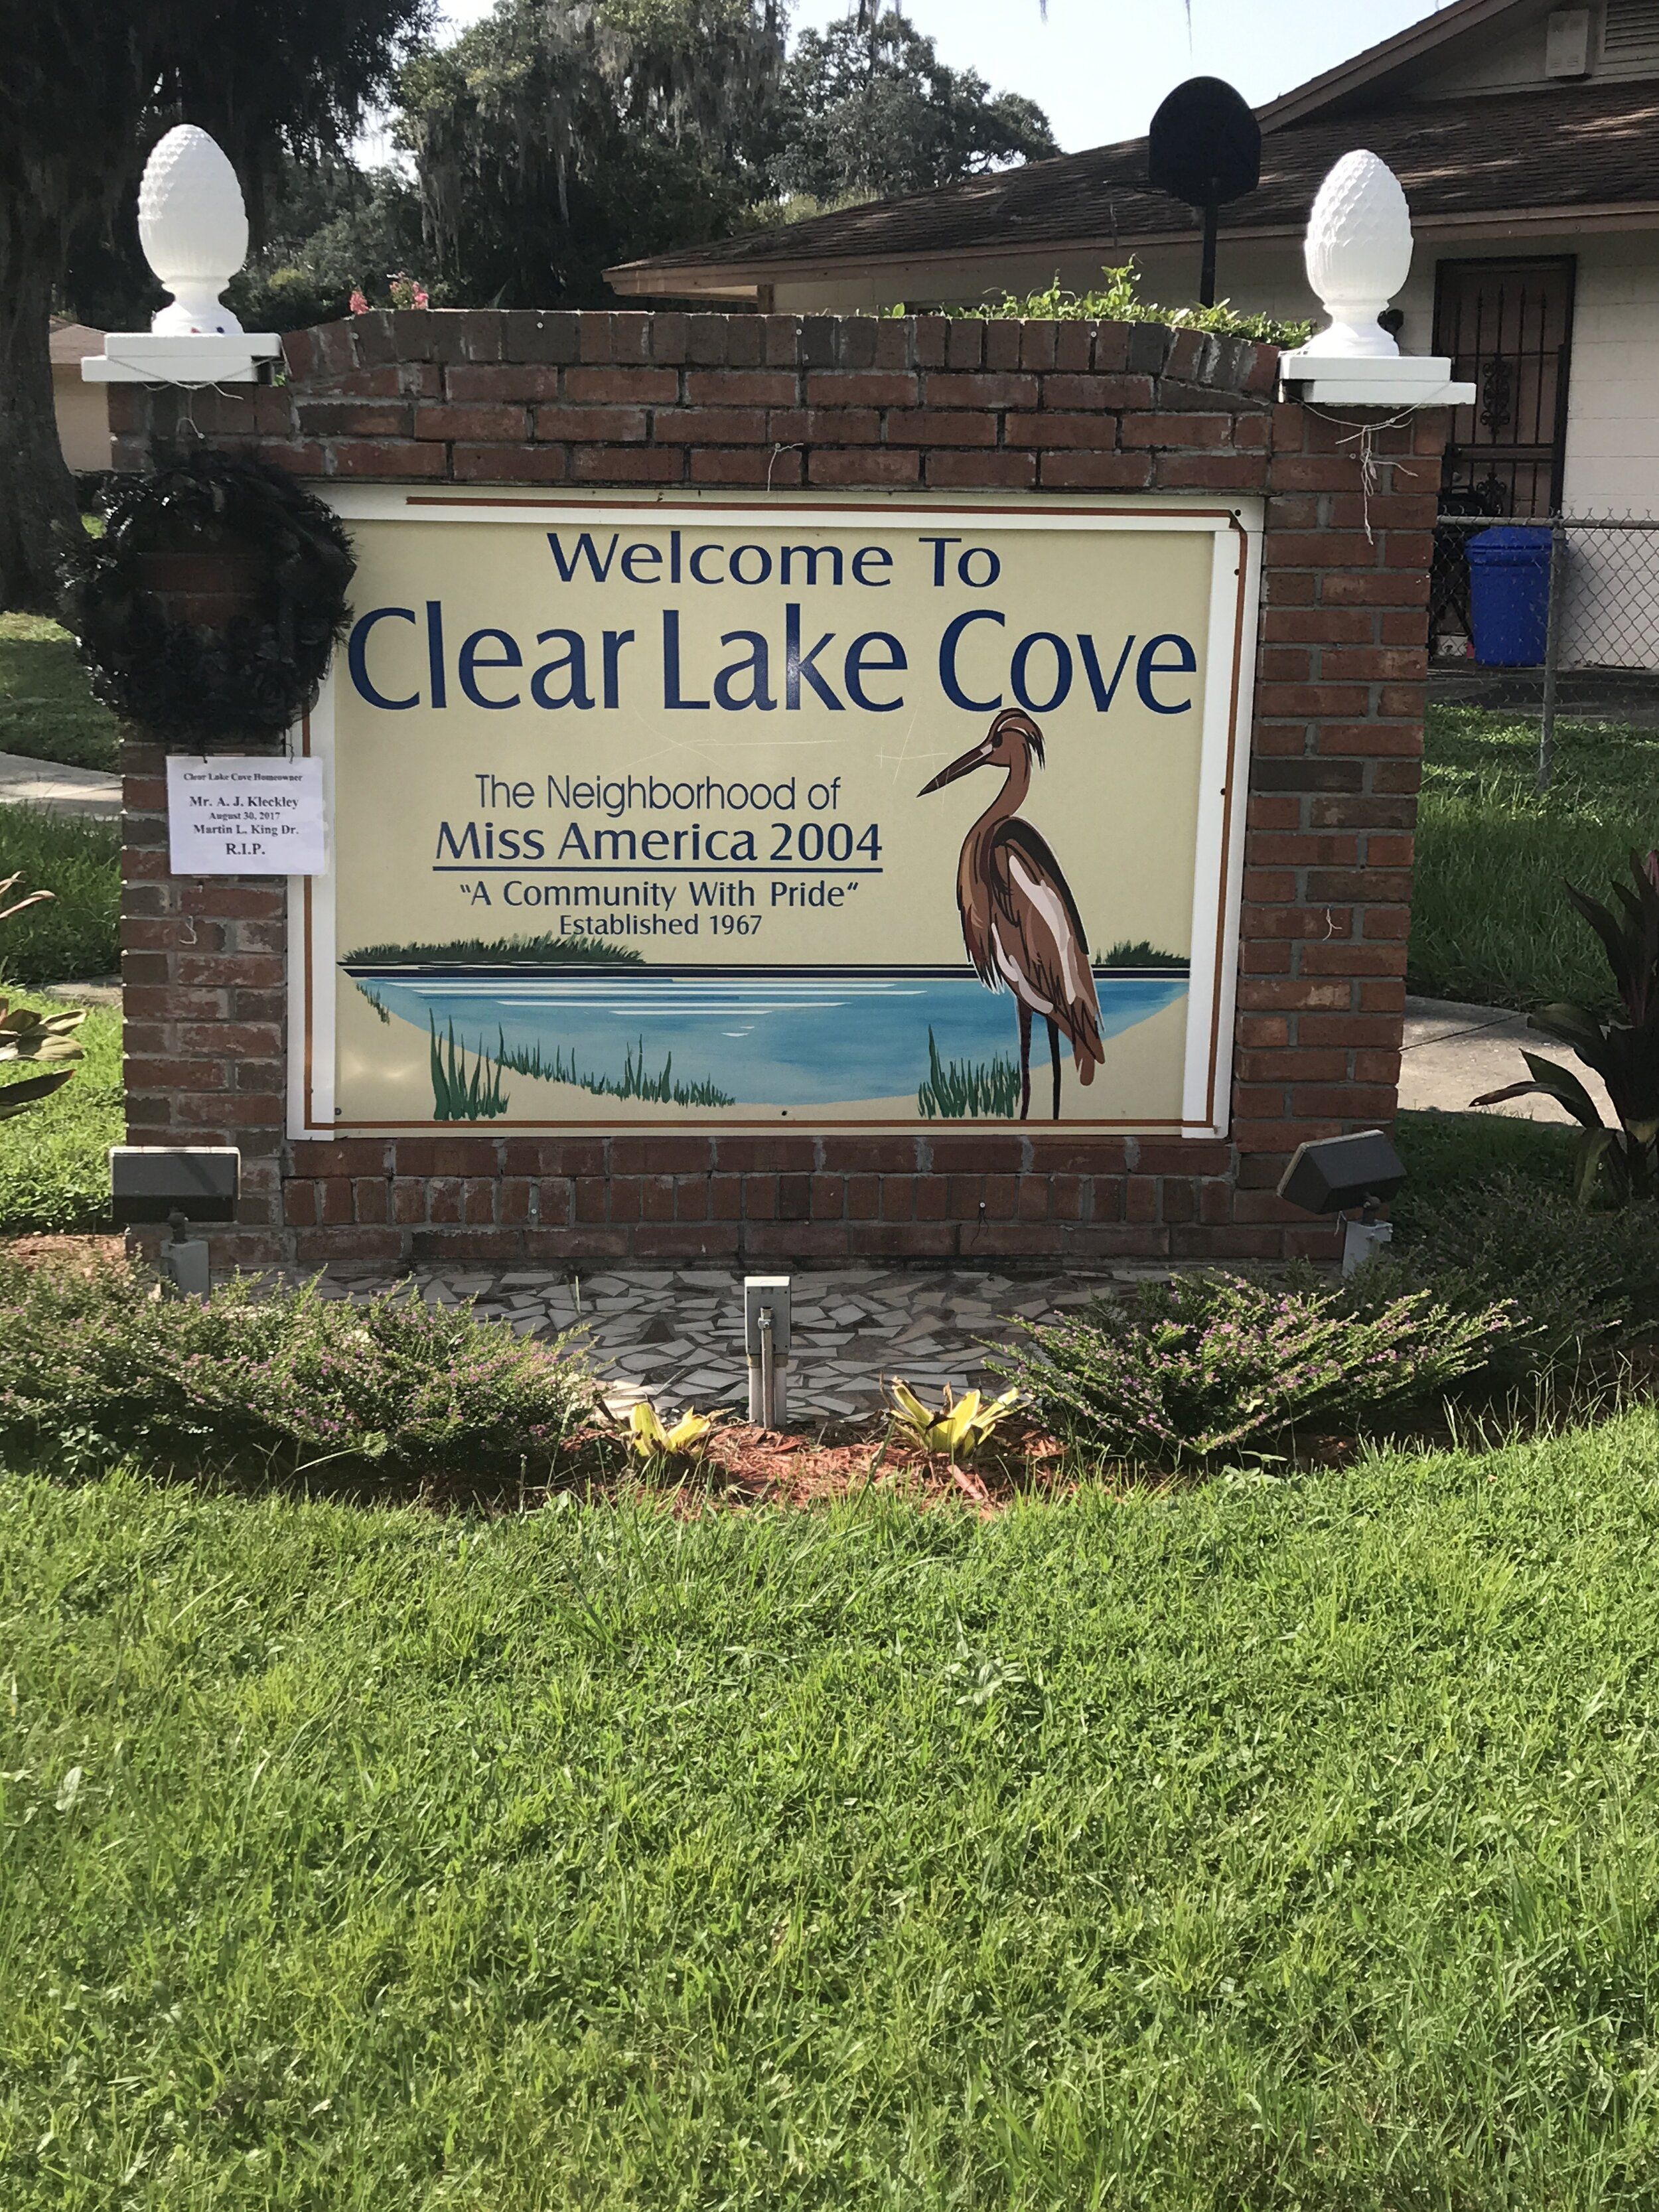 CLEAR LAKE COVE   Named for the largest lake in West Lakes. Established in 1968 with streets named for the assassinated Martin Luther King Jr. and his family members. A single access point for entry and one of the first neighborhoods in Orlando with  utilities installed underground. Most houses built to architect specifications between 1969 and 1975. Home of Orlando's only Miss America 2004.